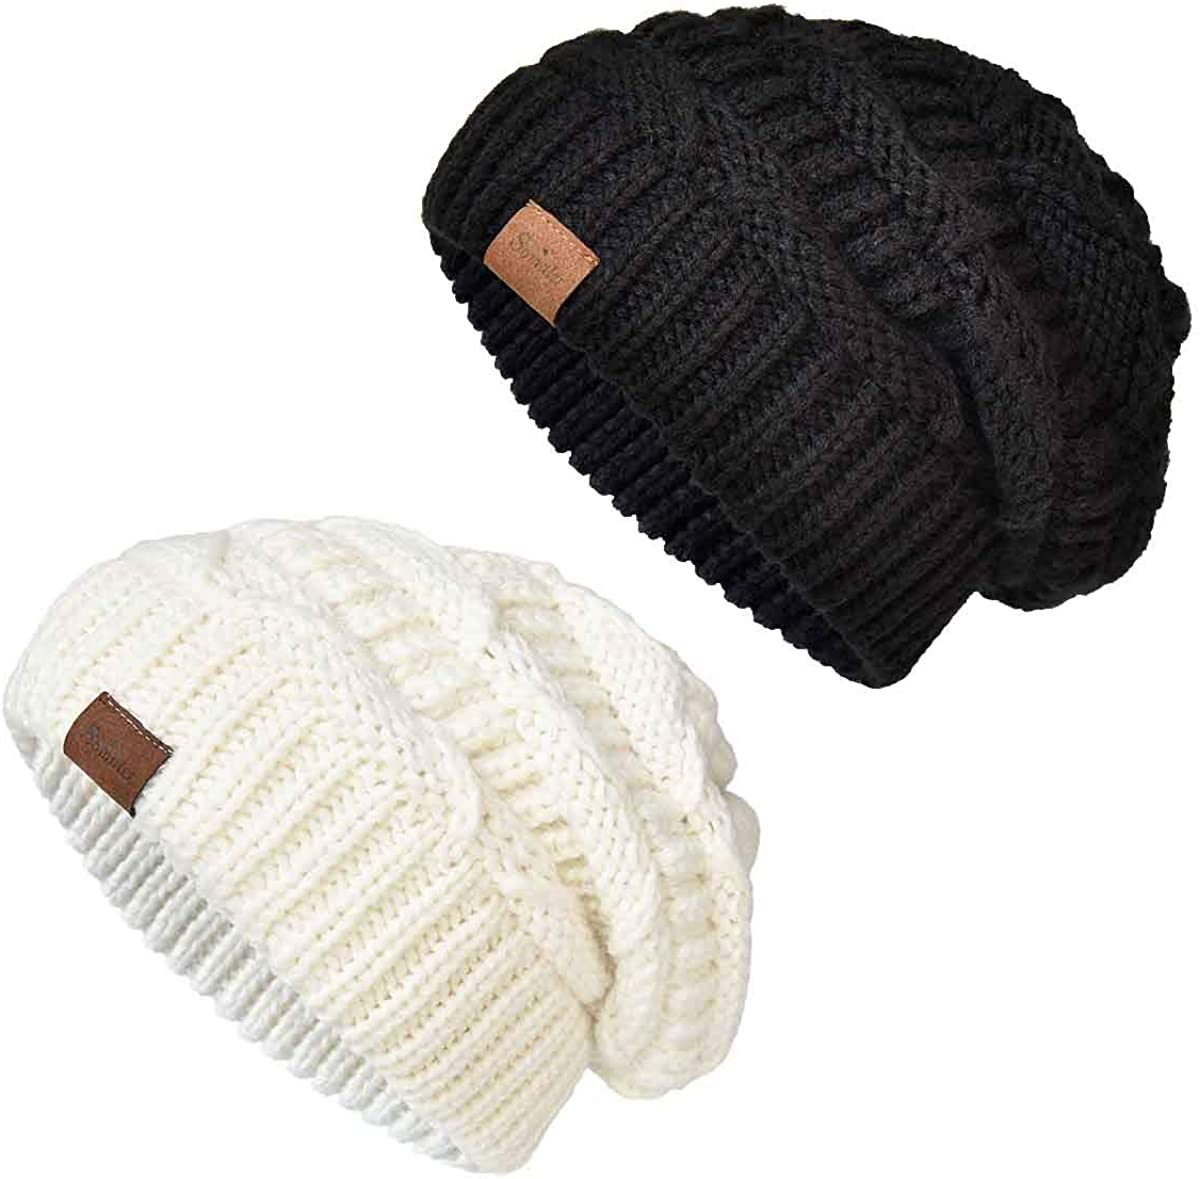 SOMALER Knit Beanie Hat for Women Oversize Chunky Winter Slouchy Beanie Hats Ski Cap